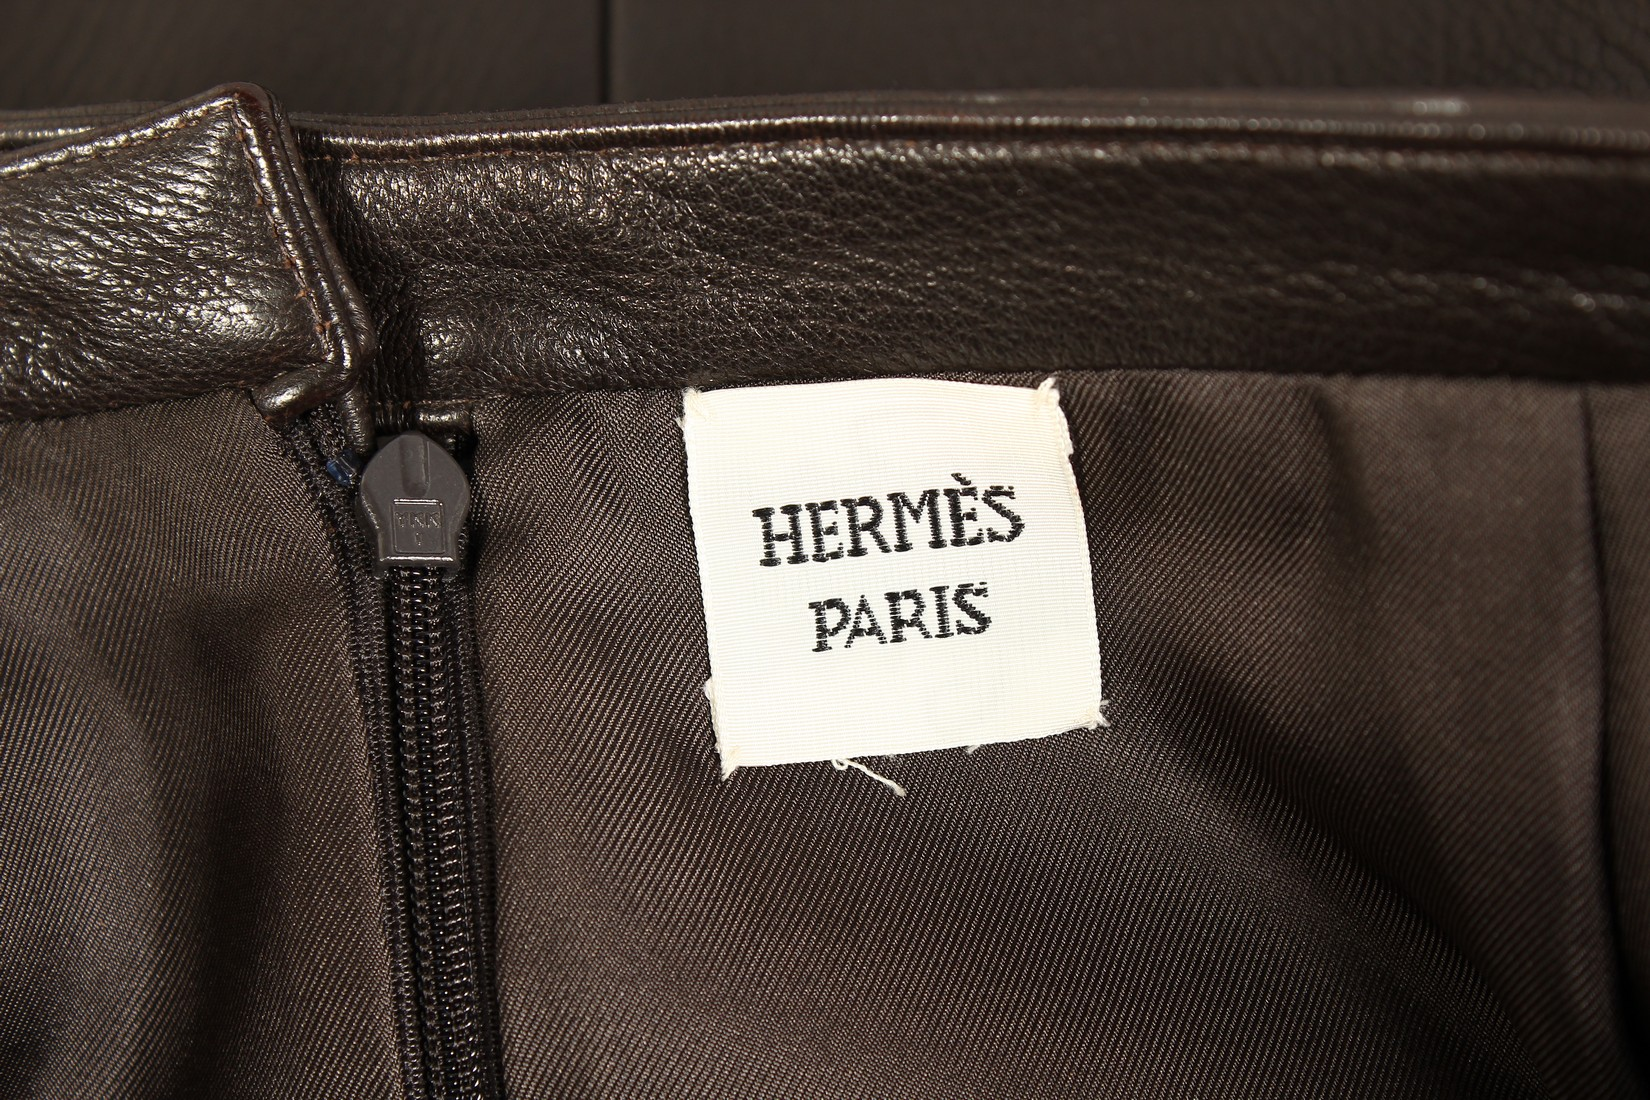 A HERMES LEATHER SKIRT, never worn. - Image 3 of 6